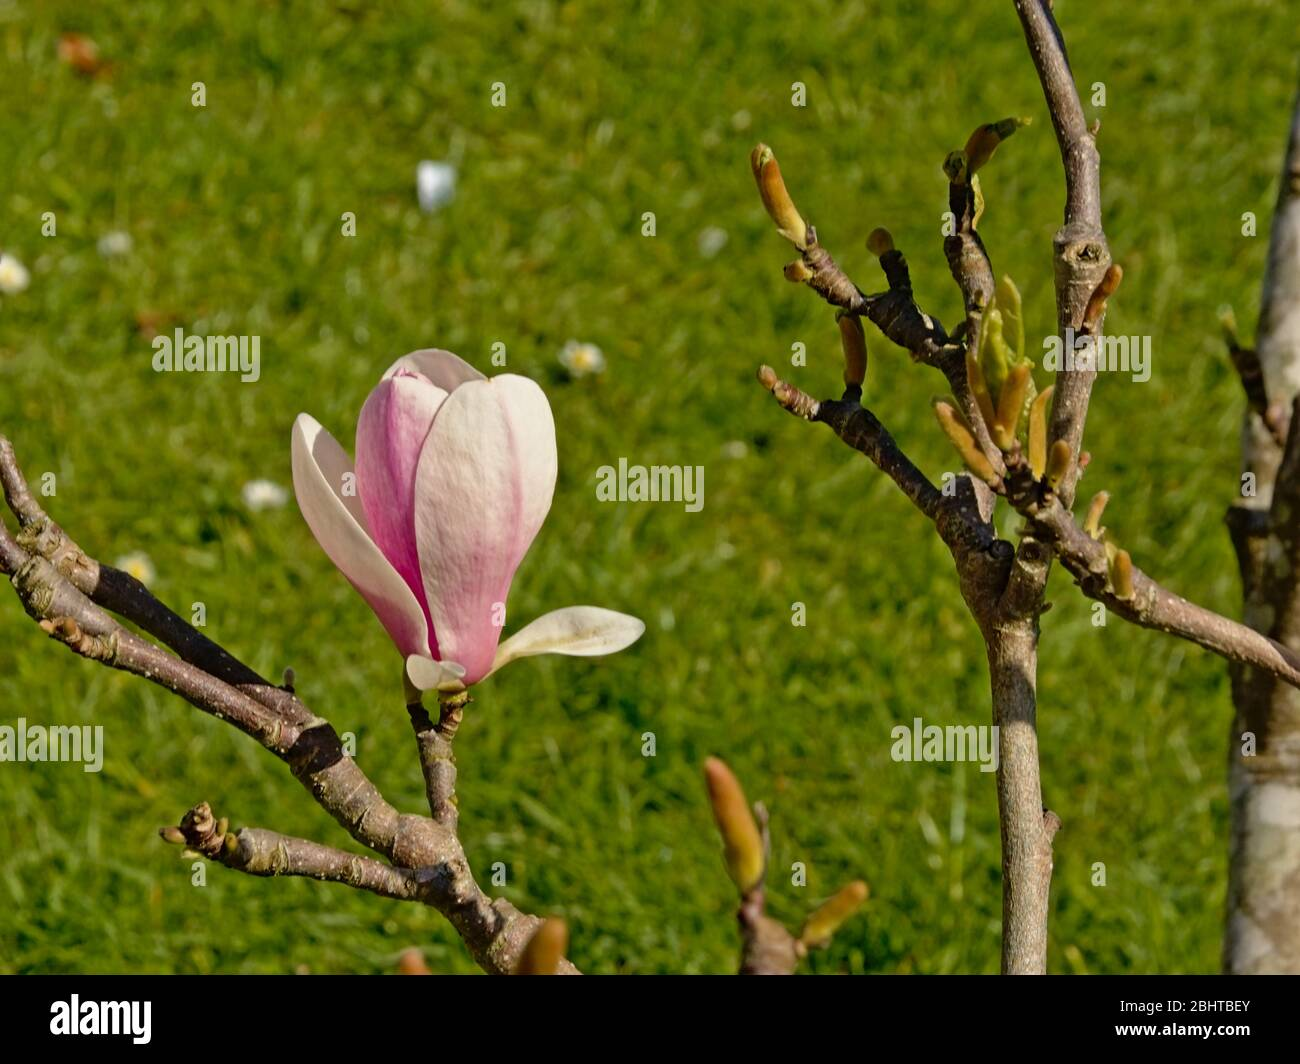 Pink magnolia flower in the garden , selectiv focus with blurry grass background Stock Photo